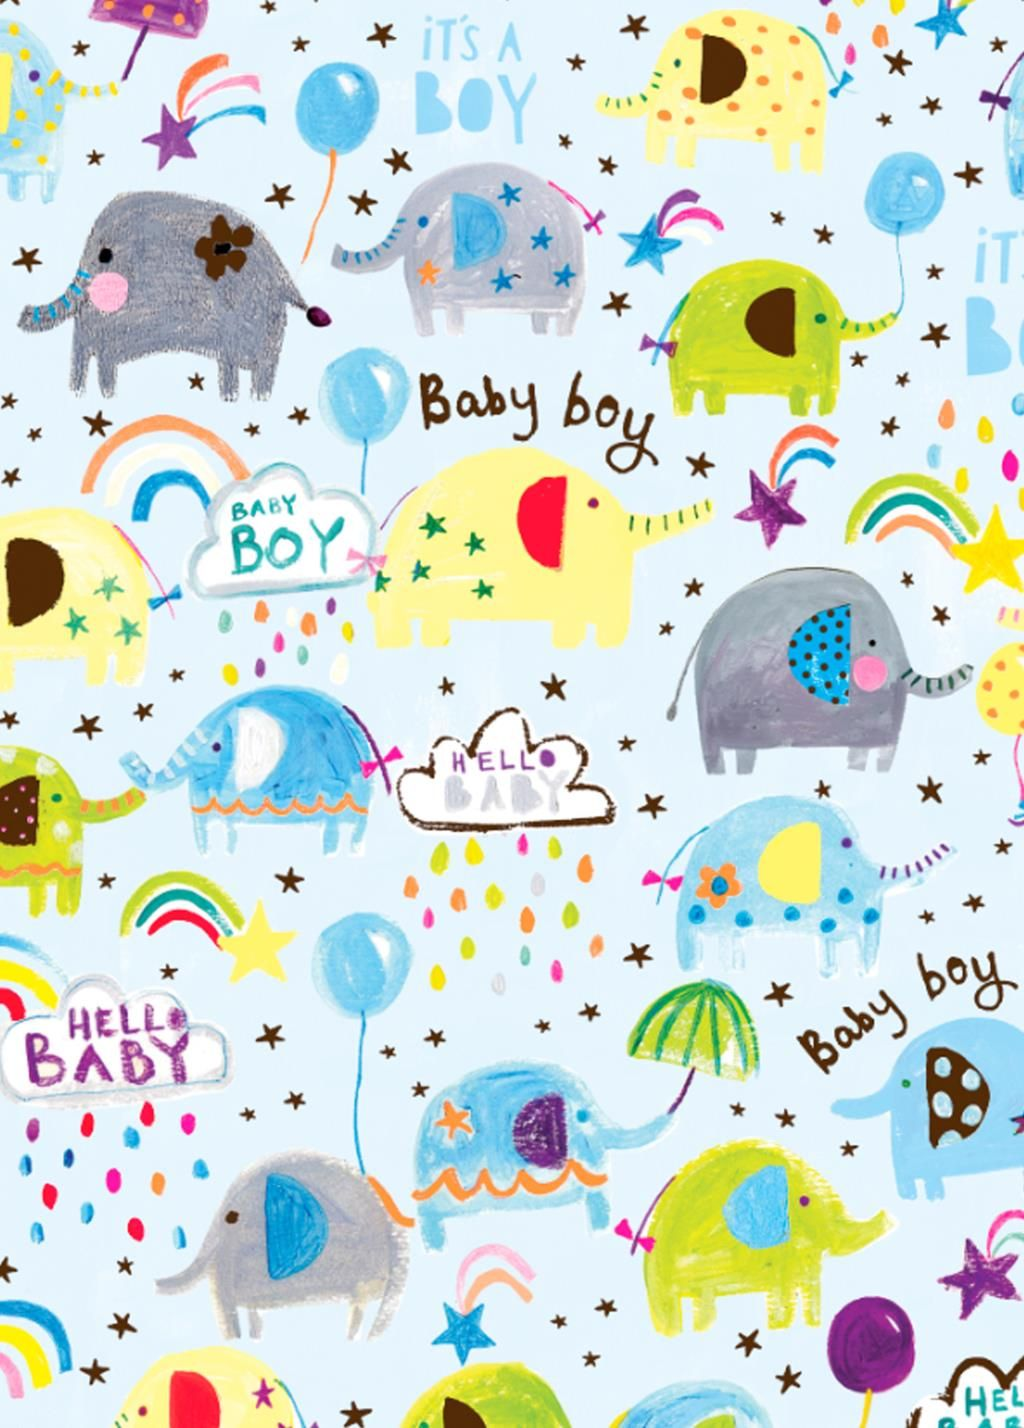 It's A Boy Wrapping Paper - 2 SHEETS Of LUXURY Gift WRAP - RECYCLABLE Wrapp